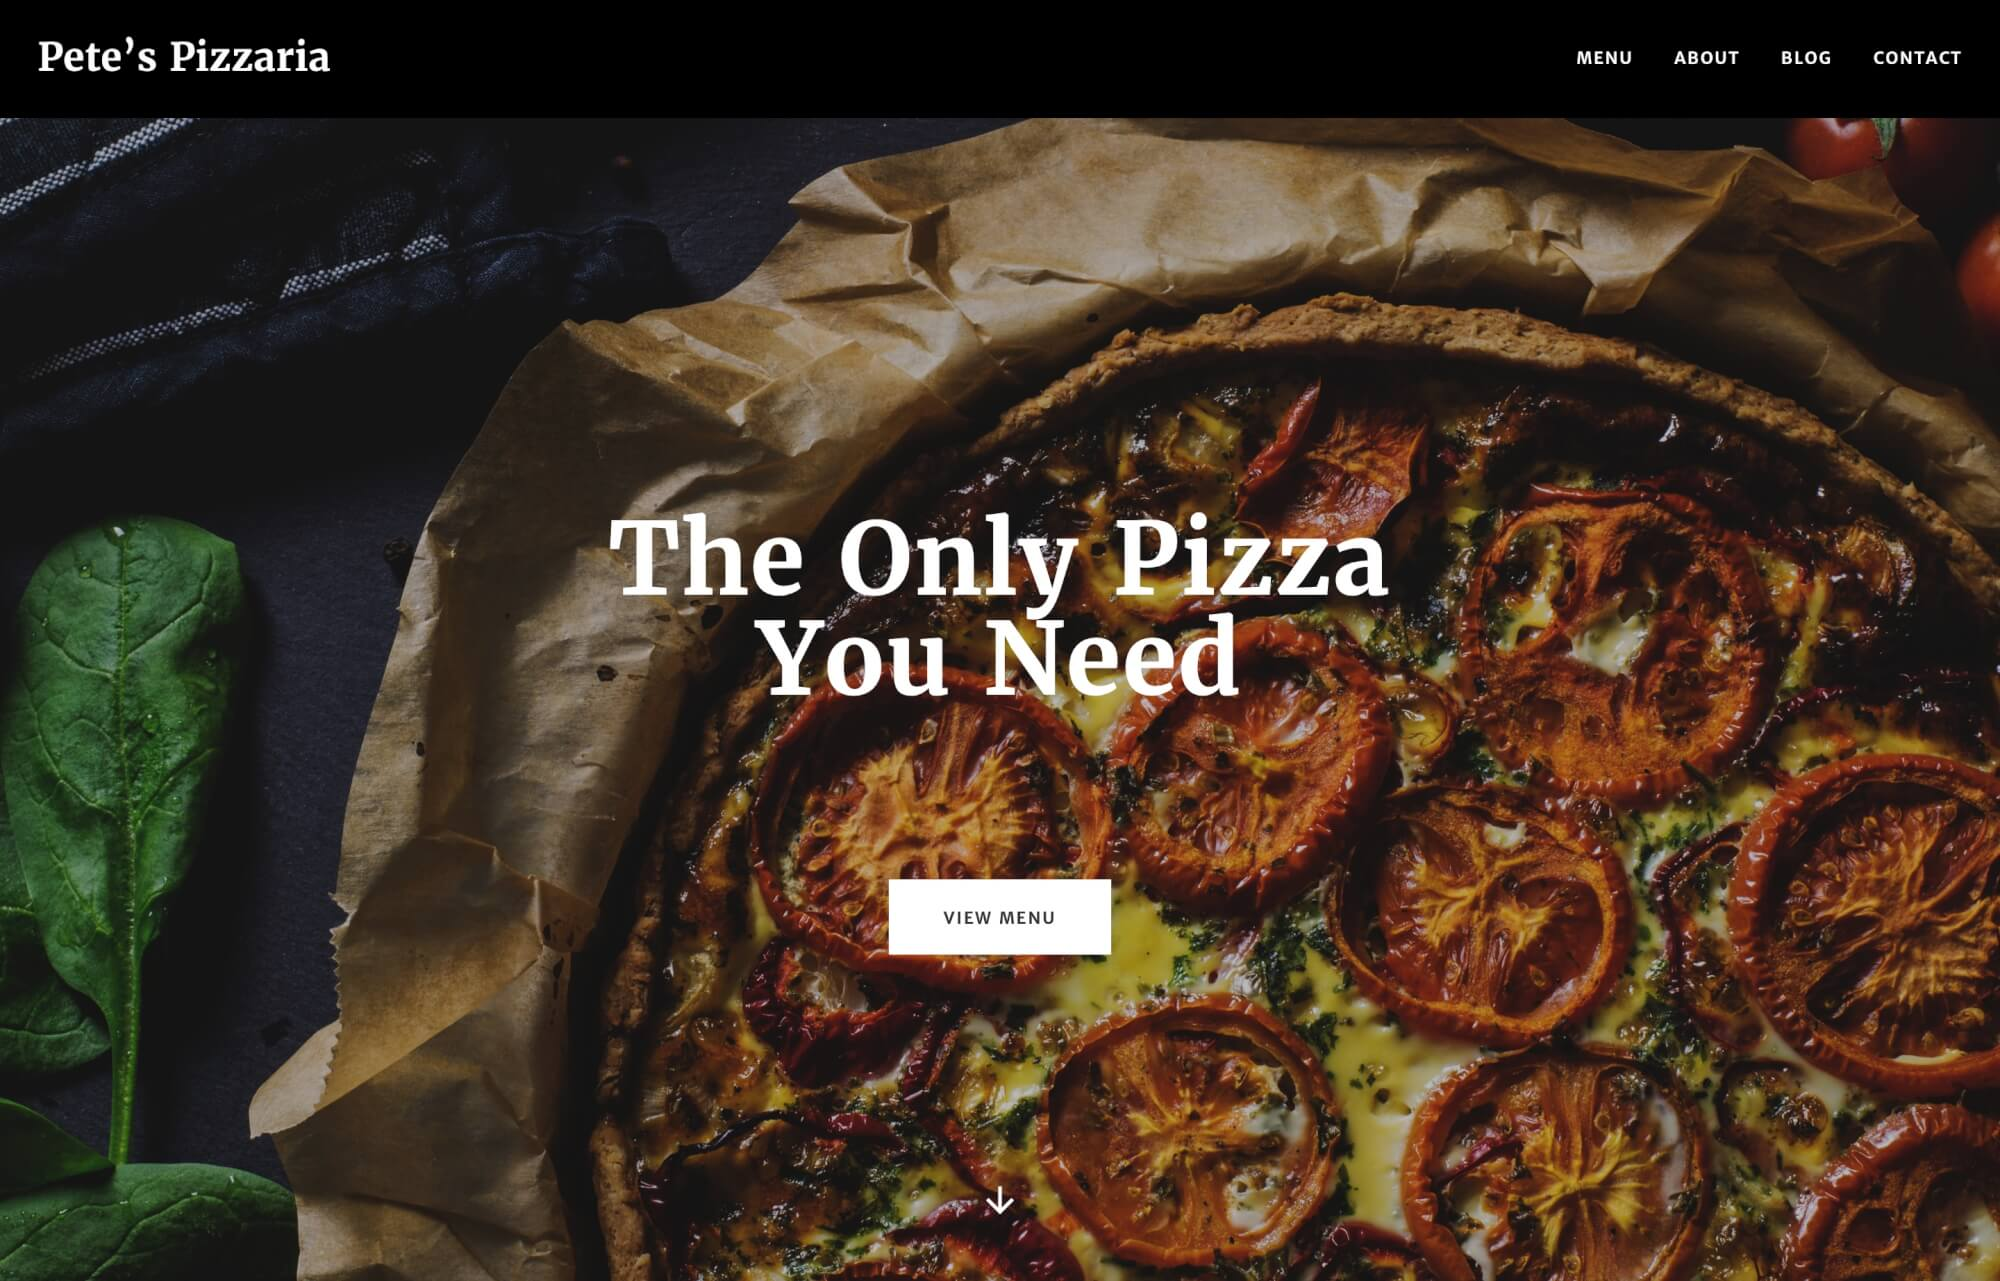 Modular Orange Website for Pete's Pizzaria - the only pizza you need